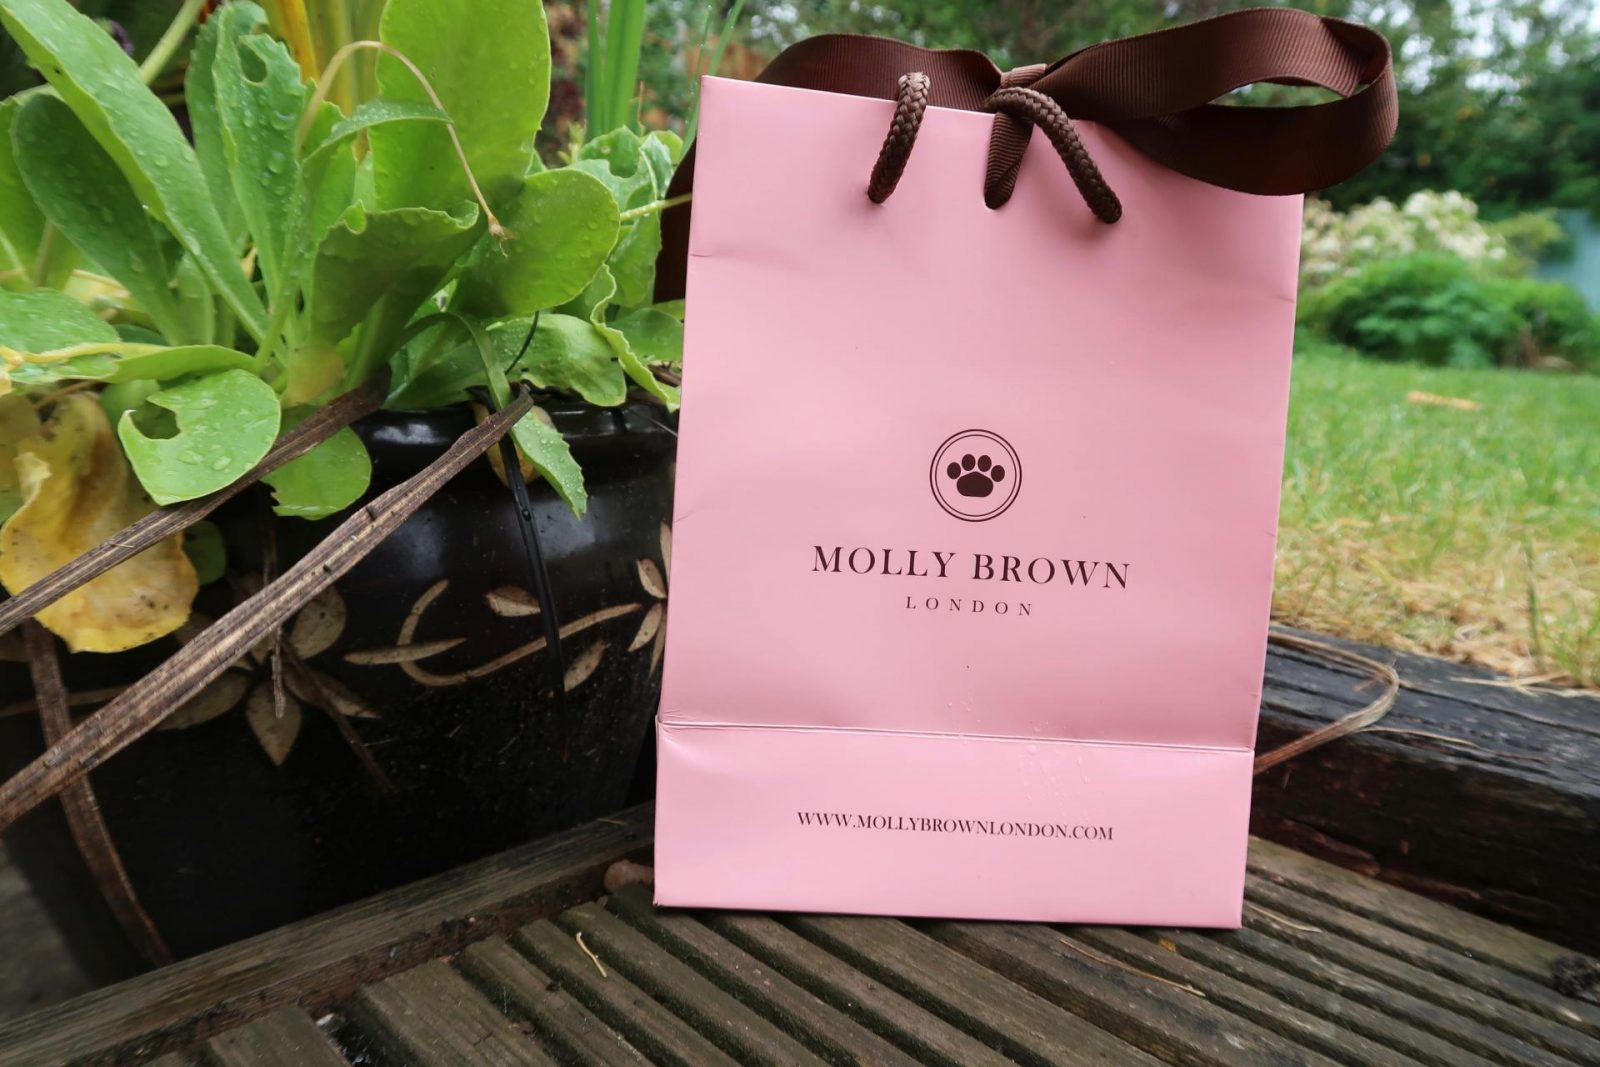 Molly Brown jewellery bag